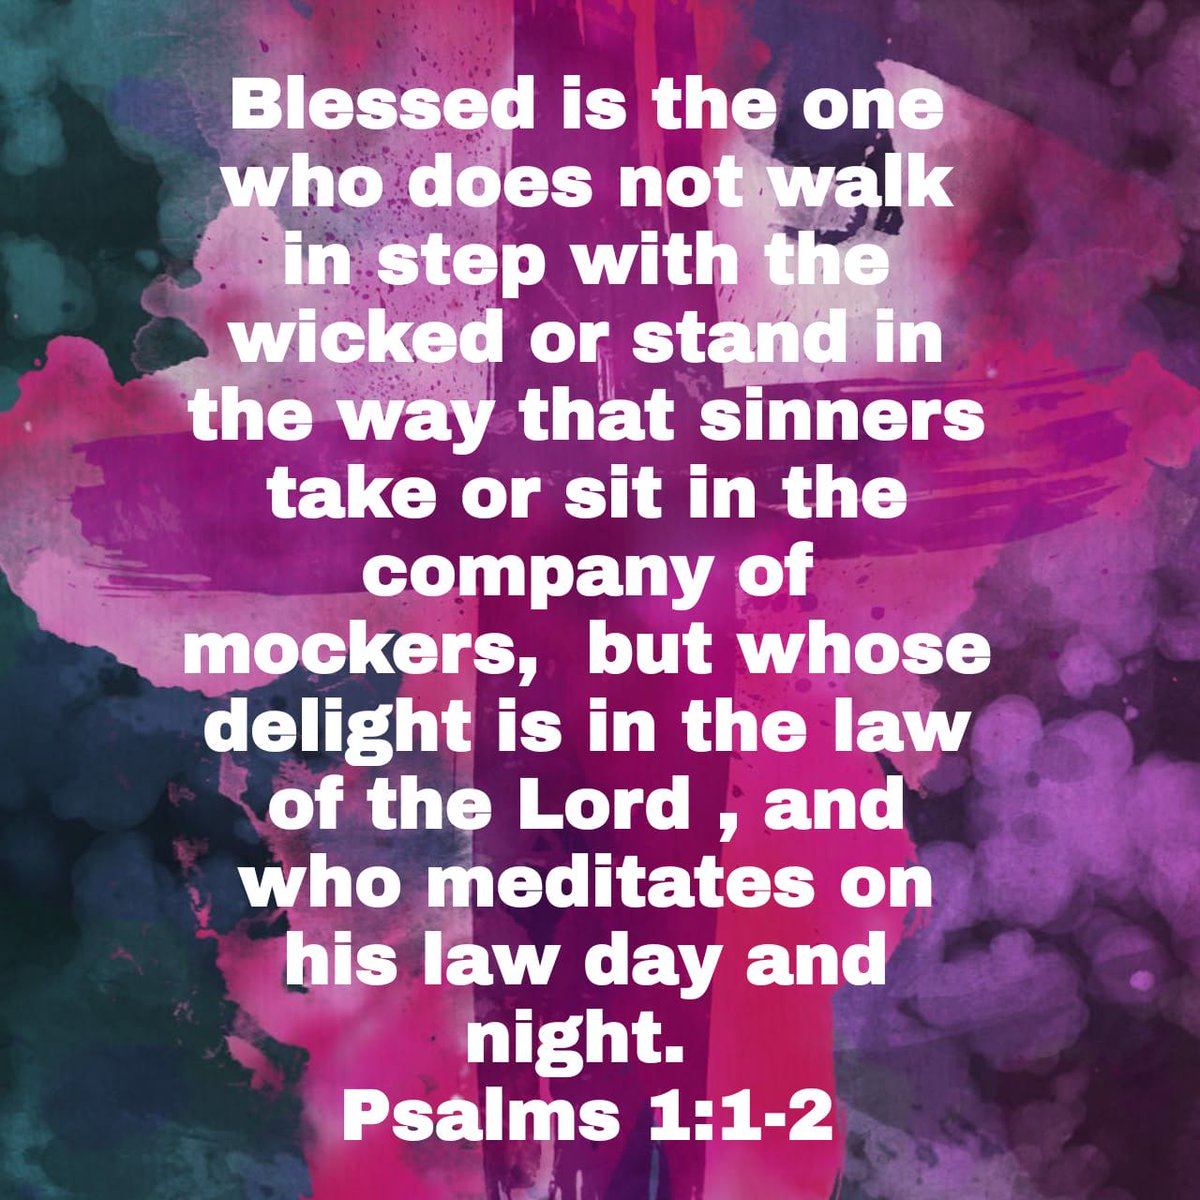 Blessed is the one who does not walk in step with the wicked or stand in the way that sinners tak… https://t.co/3kn0pmOI4r https://t.co/x08AMICYwL